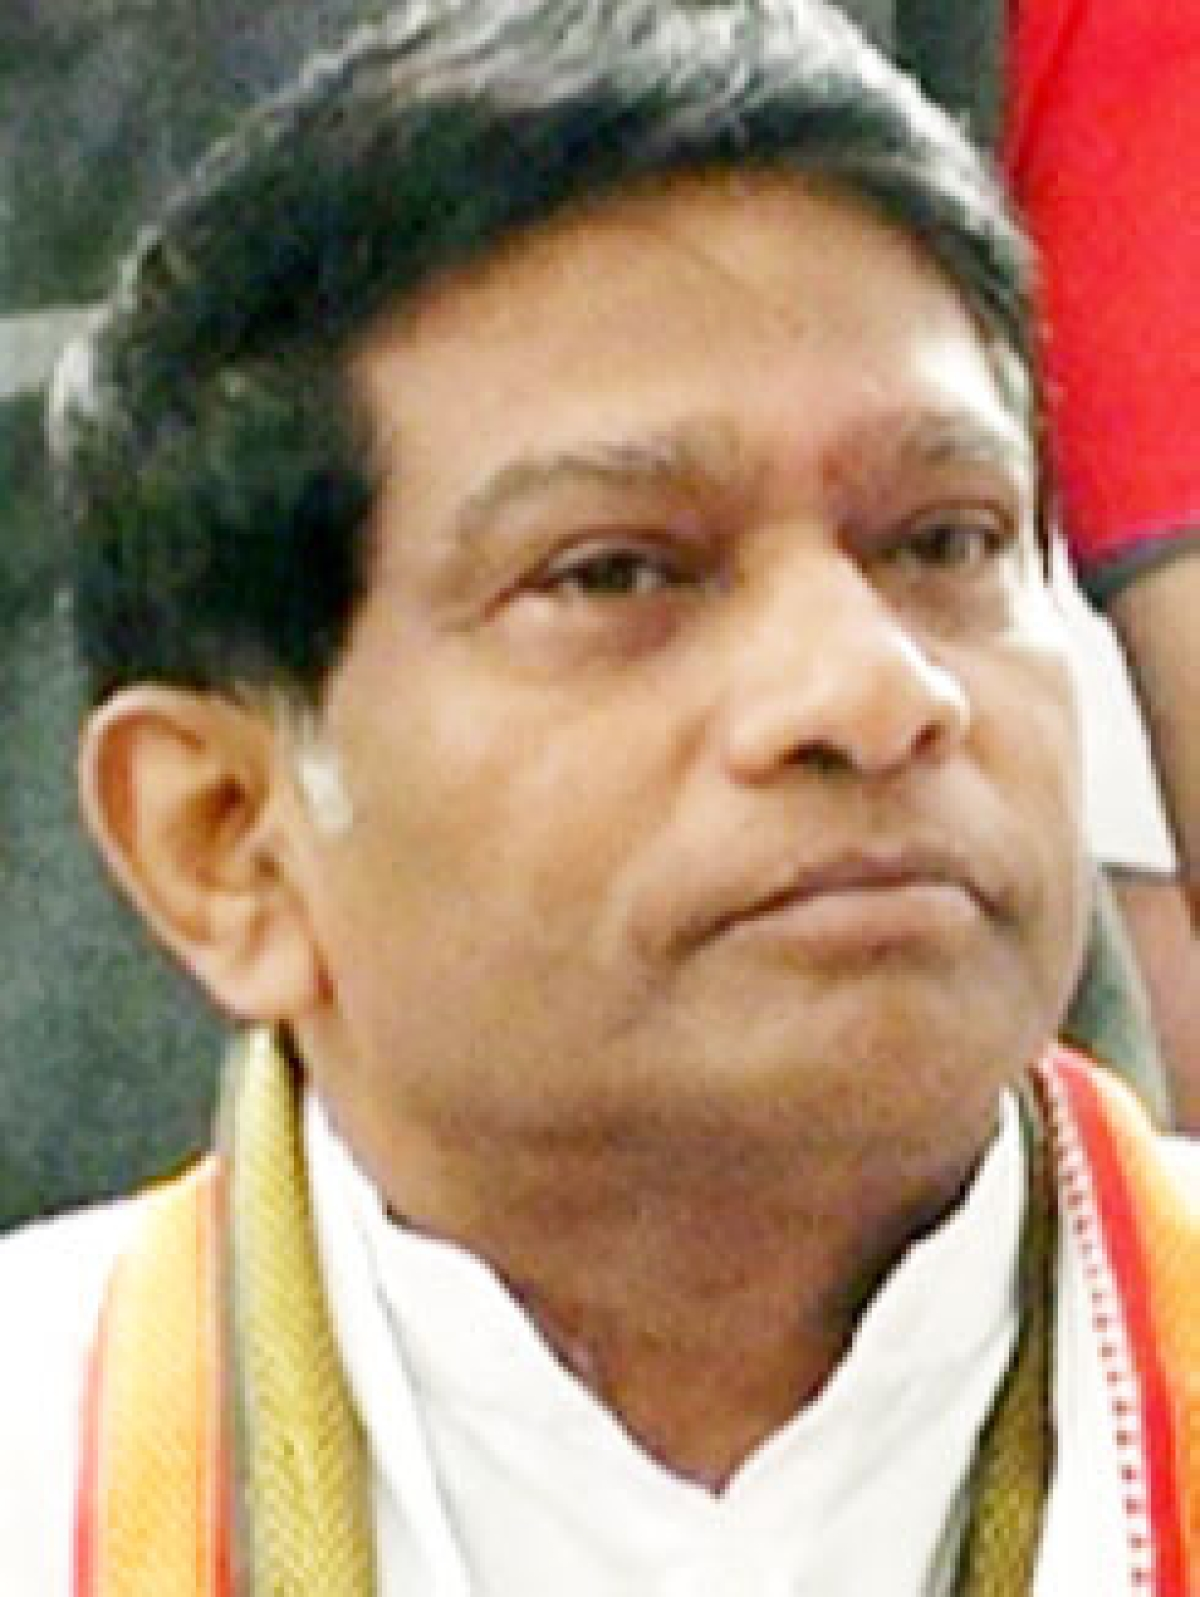 First Chief Minister of Chhattisgarh, Ajit Jogi, dies at 74